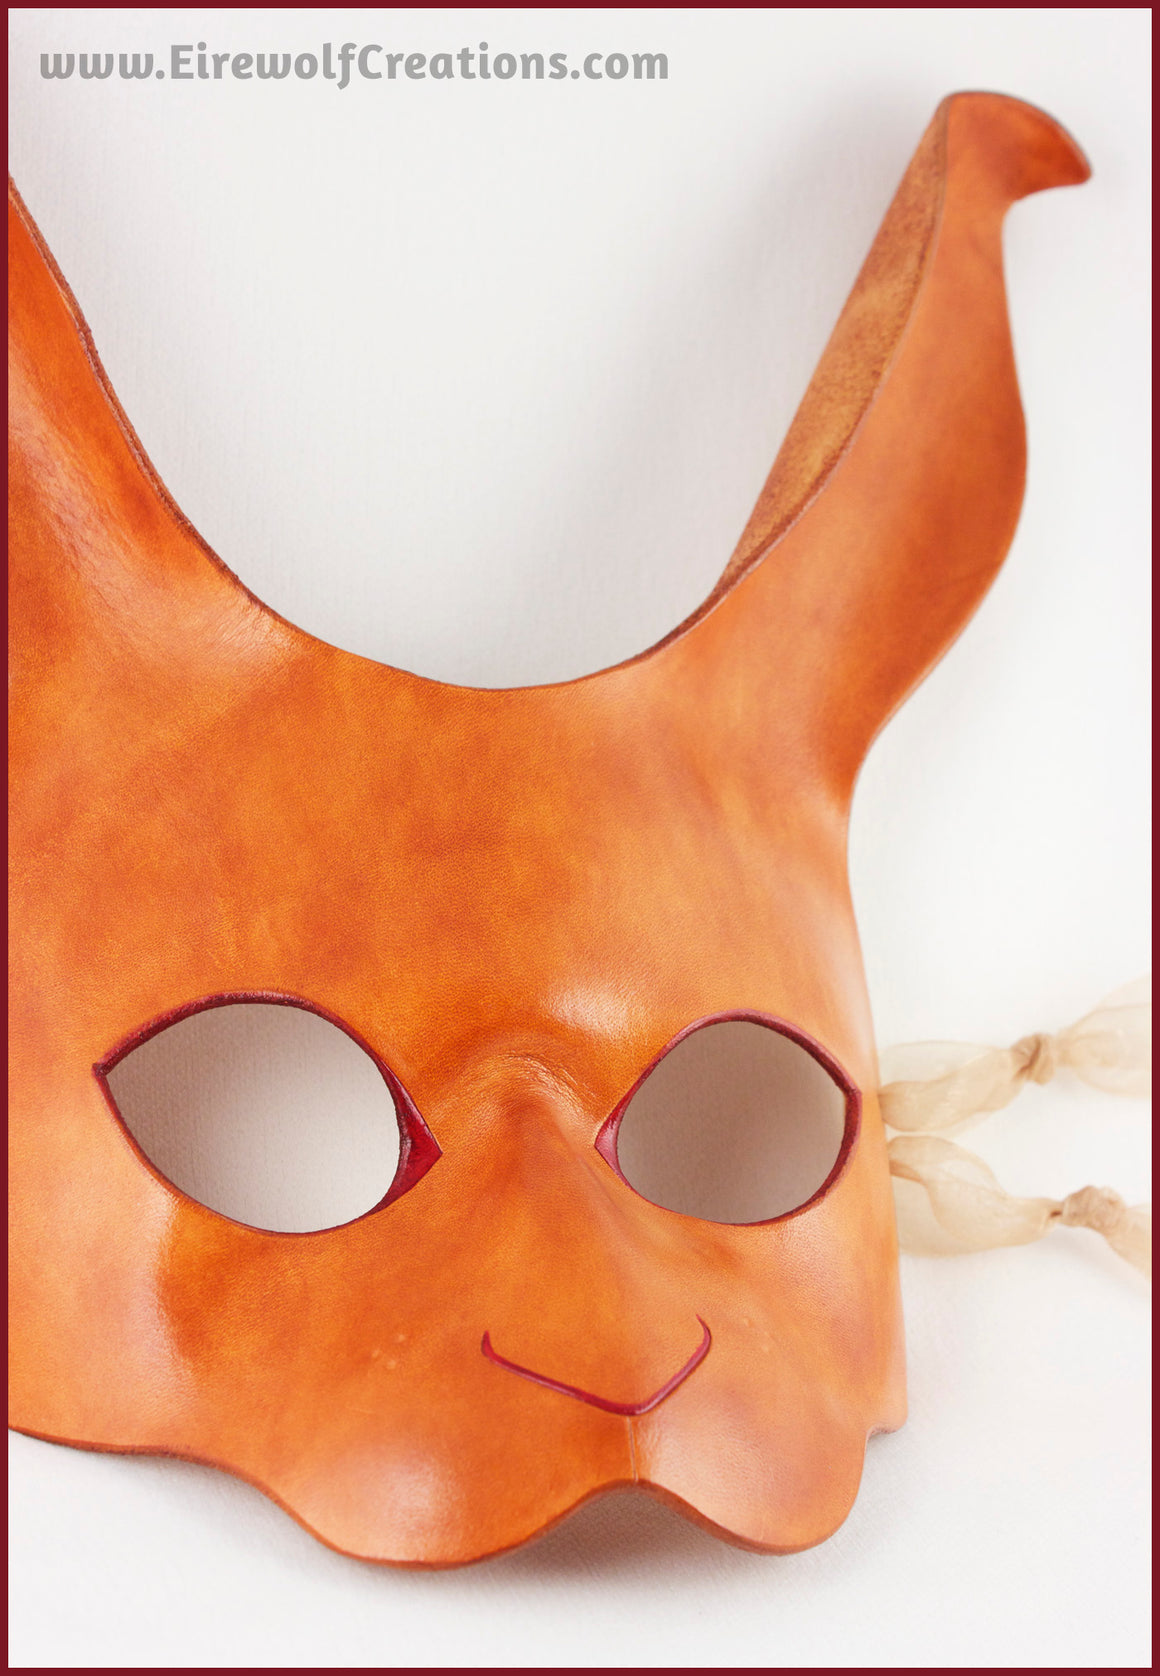 A handmade leather rabbit mask for a masquerade costume, dyed light brown with subtle red details painted around the eyes and nose. By Erin Metcalf of Eirewolf Creations.